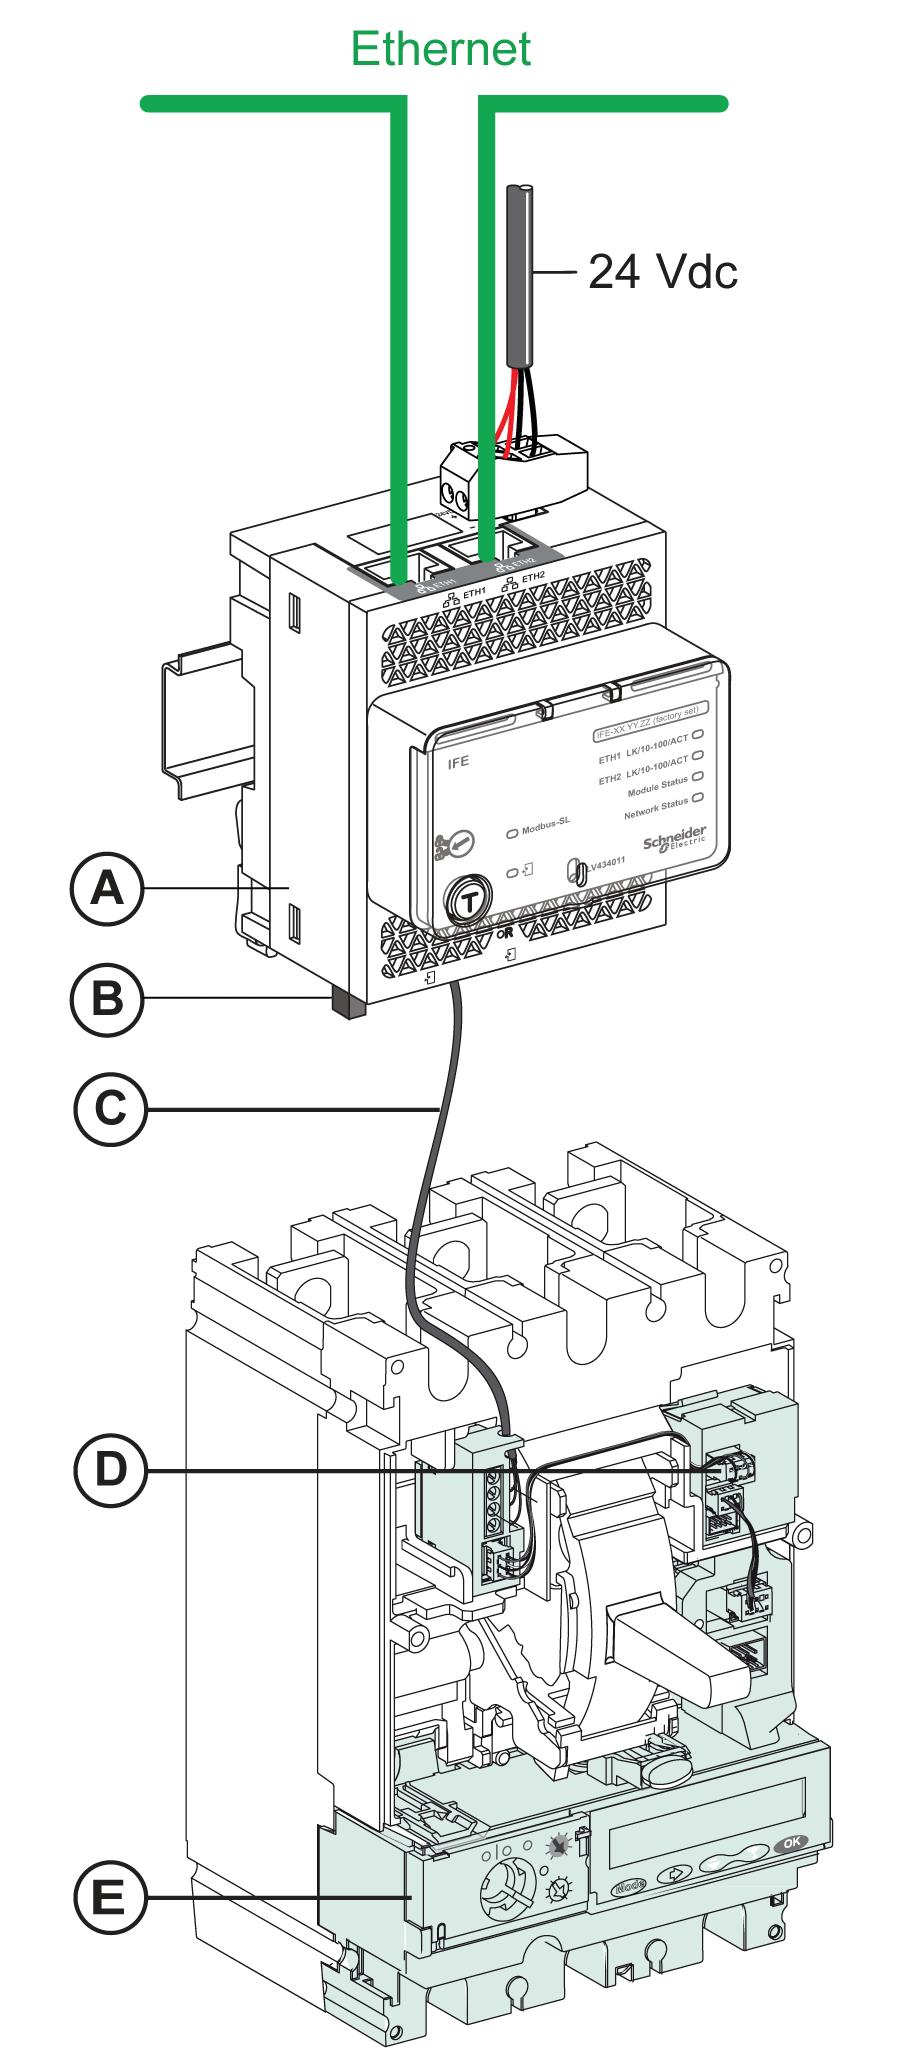 Ife Ethernet Interface For One Circuit Breaker User Guide Pdf Wire To Rs485 Schematic Presentation Connection Of The Bscm Module And Micrologic